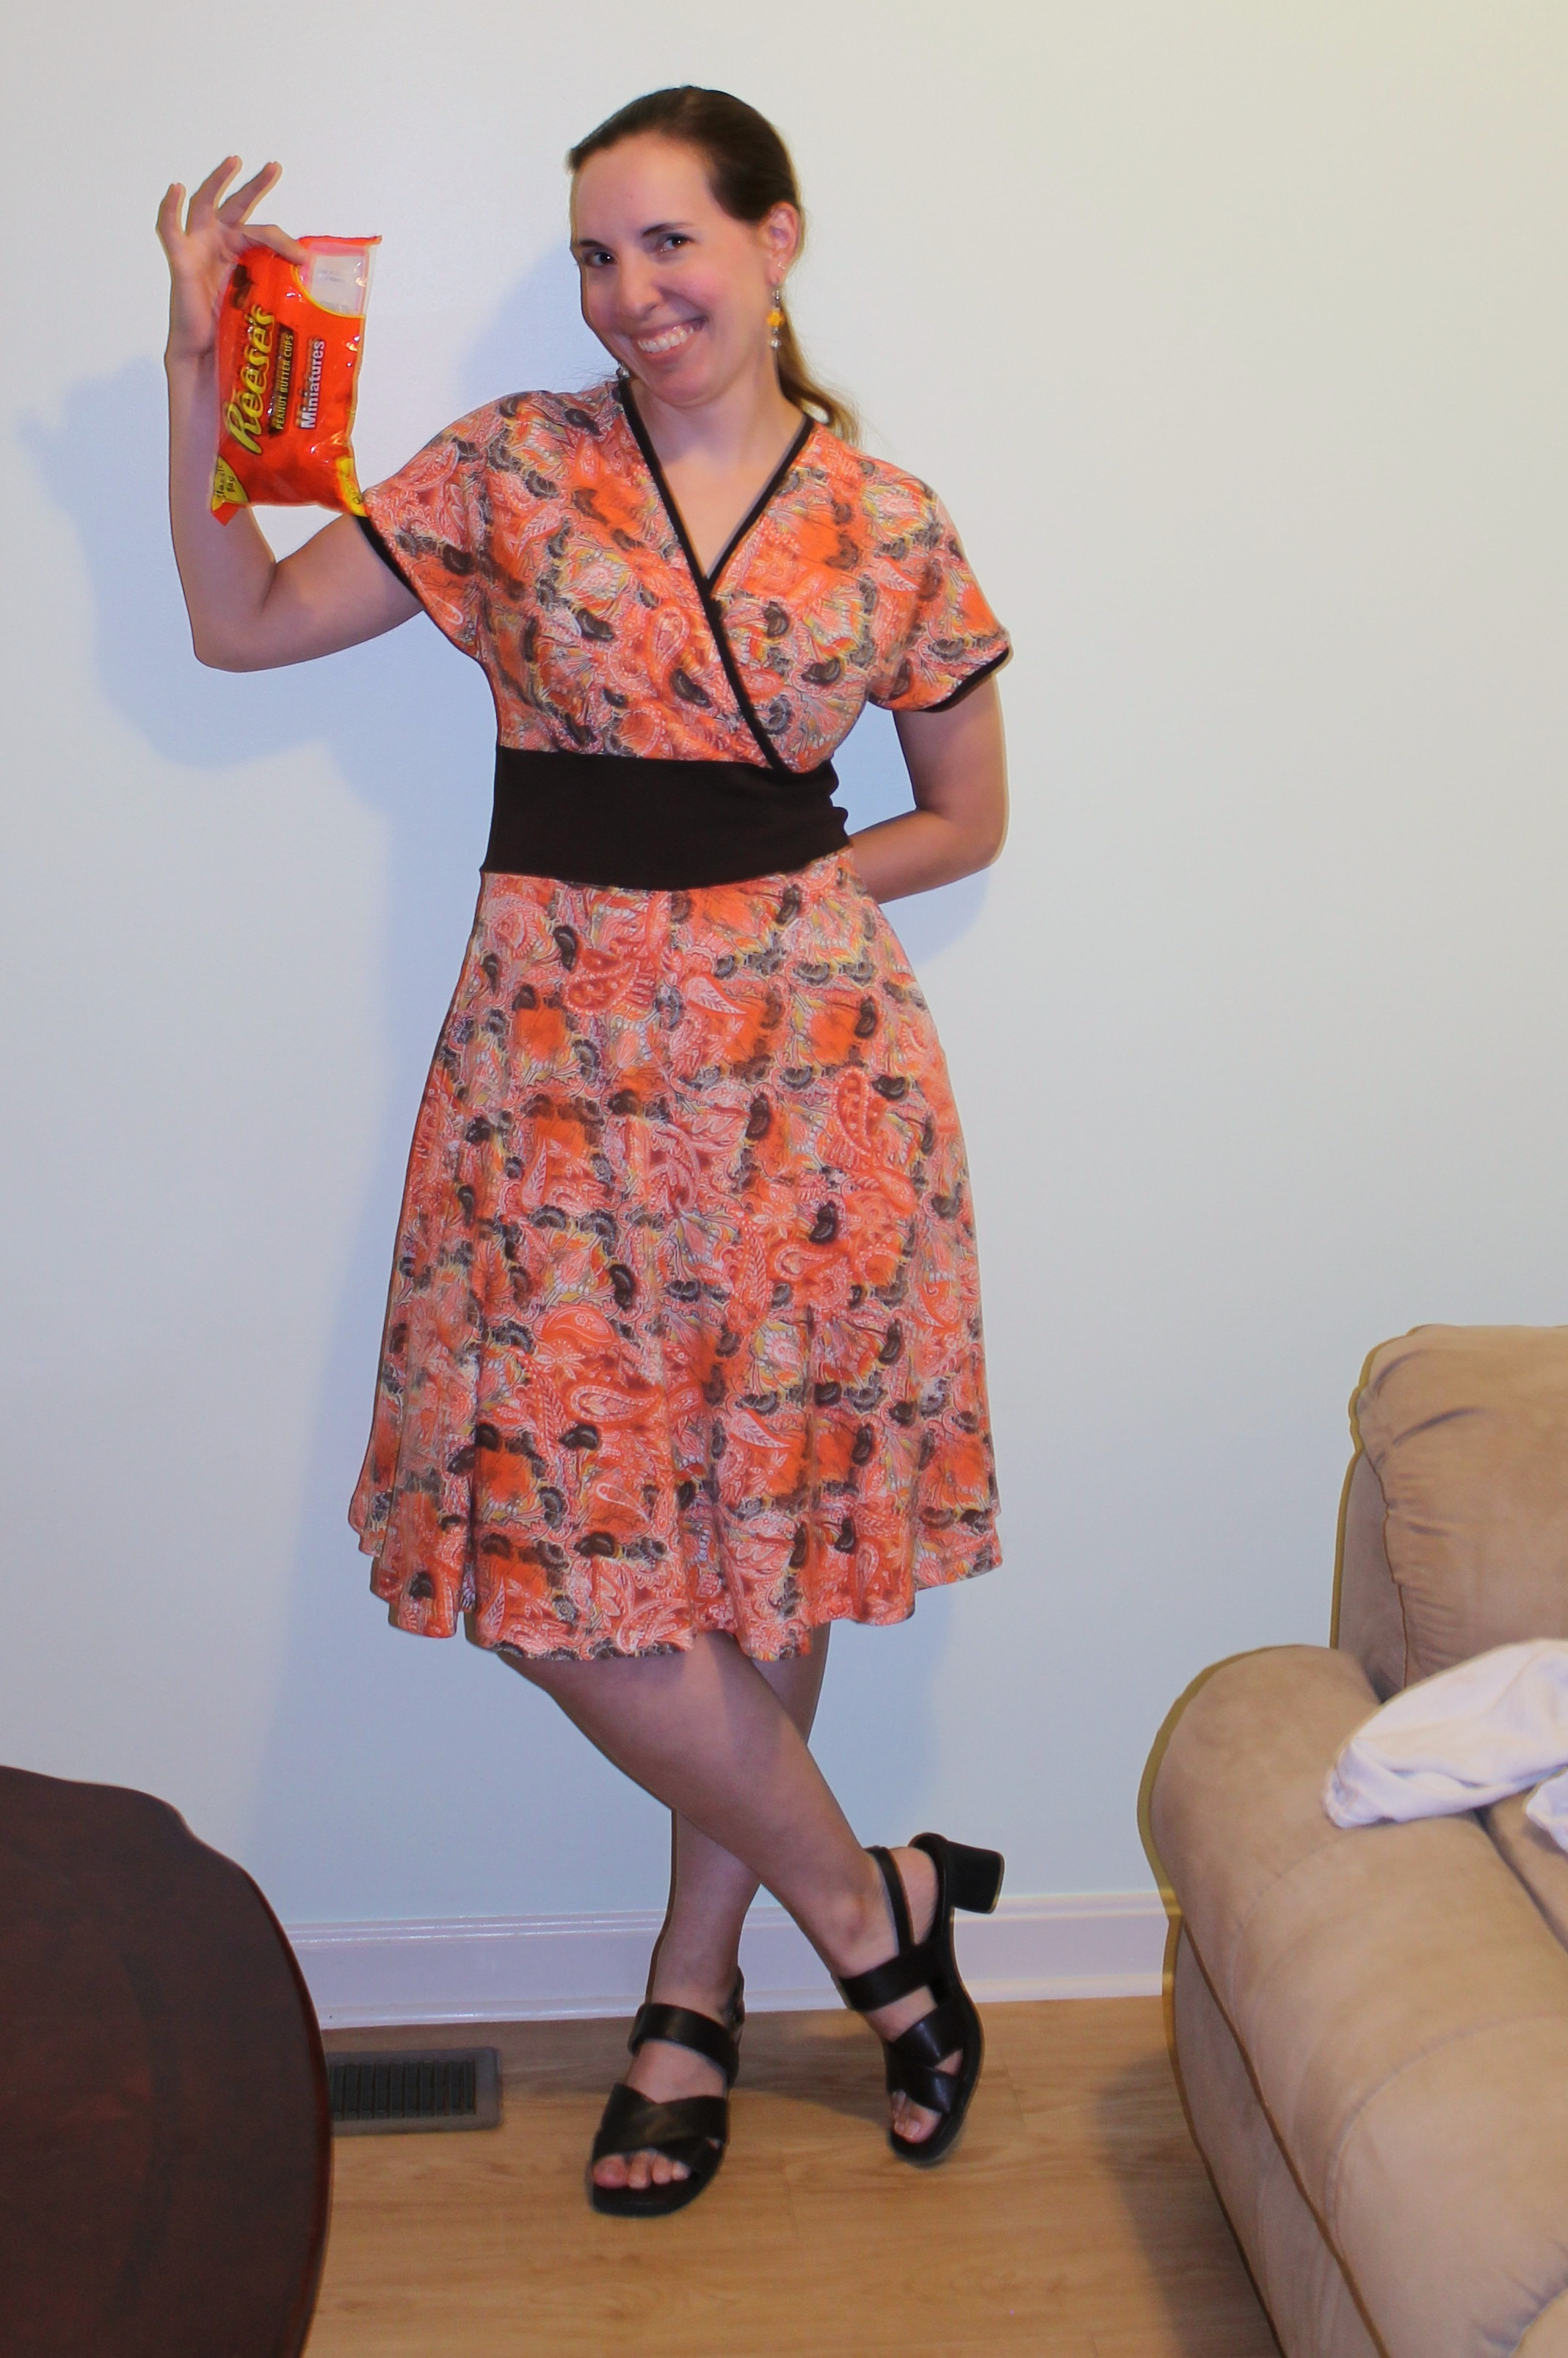 My finished Reeses' dress